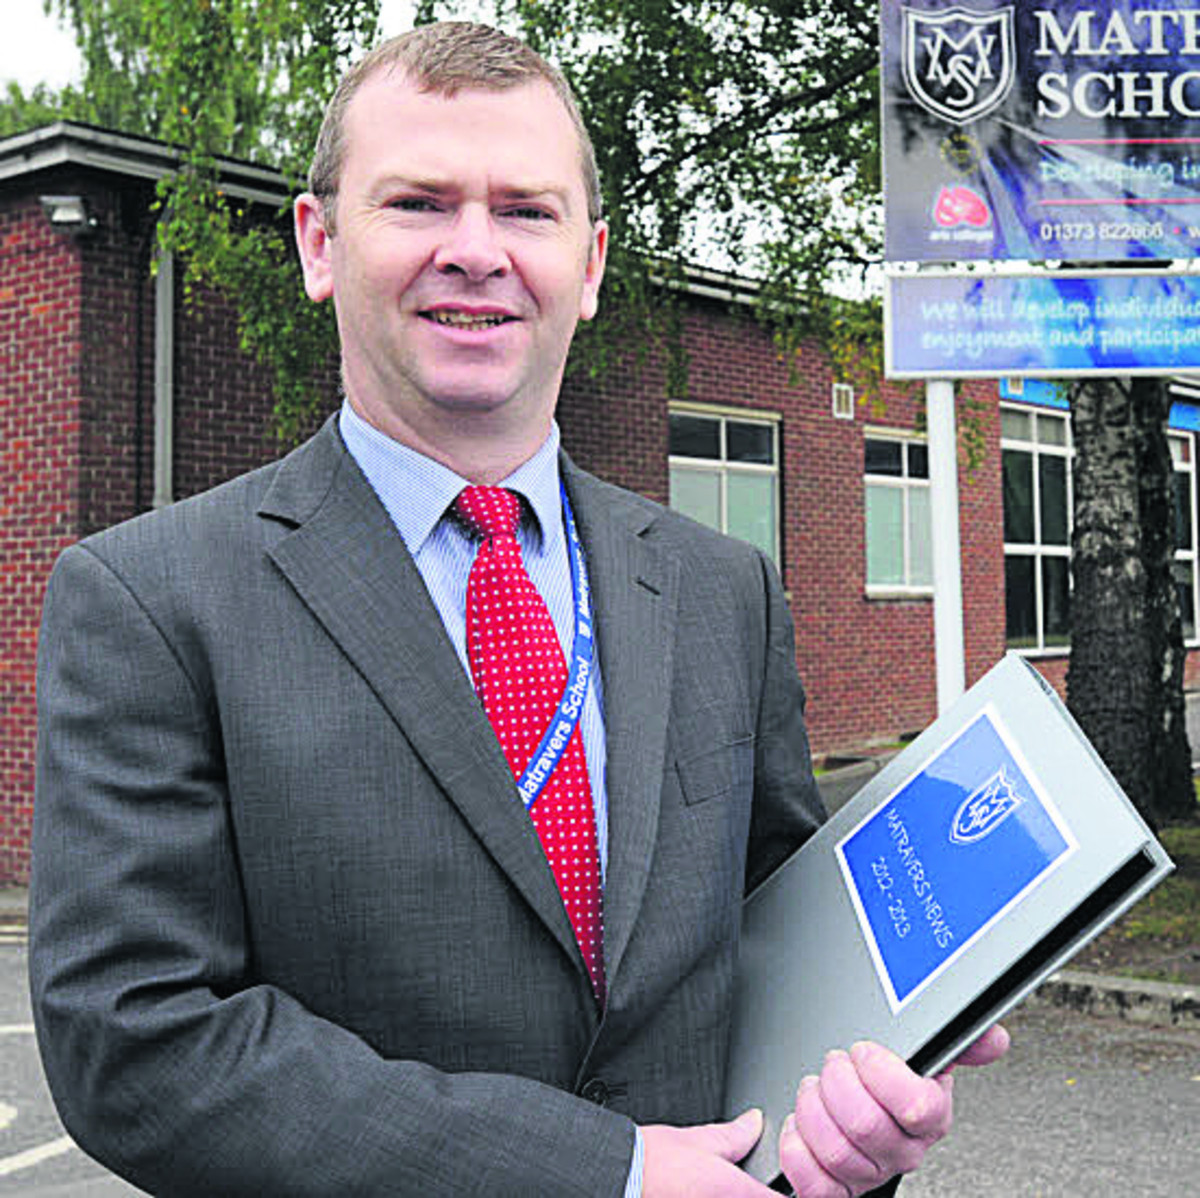 Dr Simon Riding, headteacher of Matravers School in Westbury